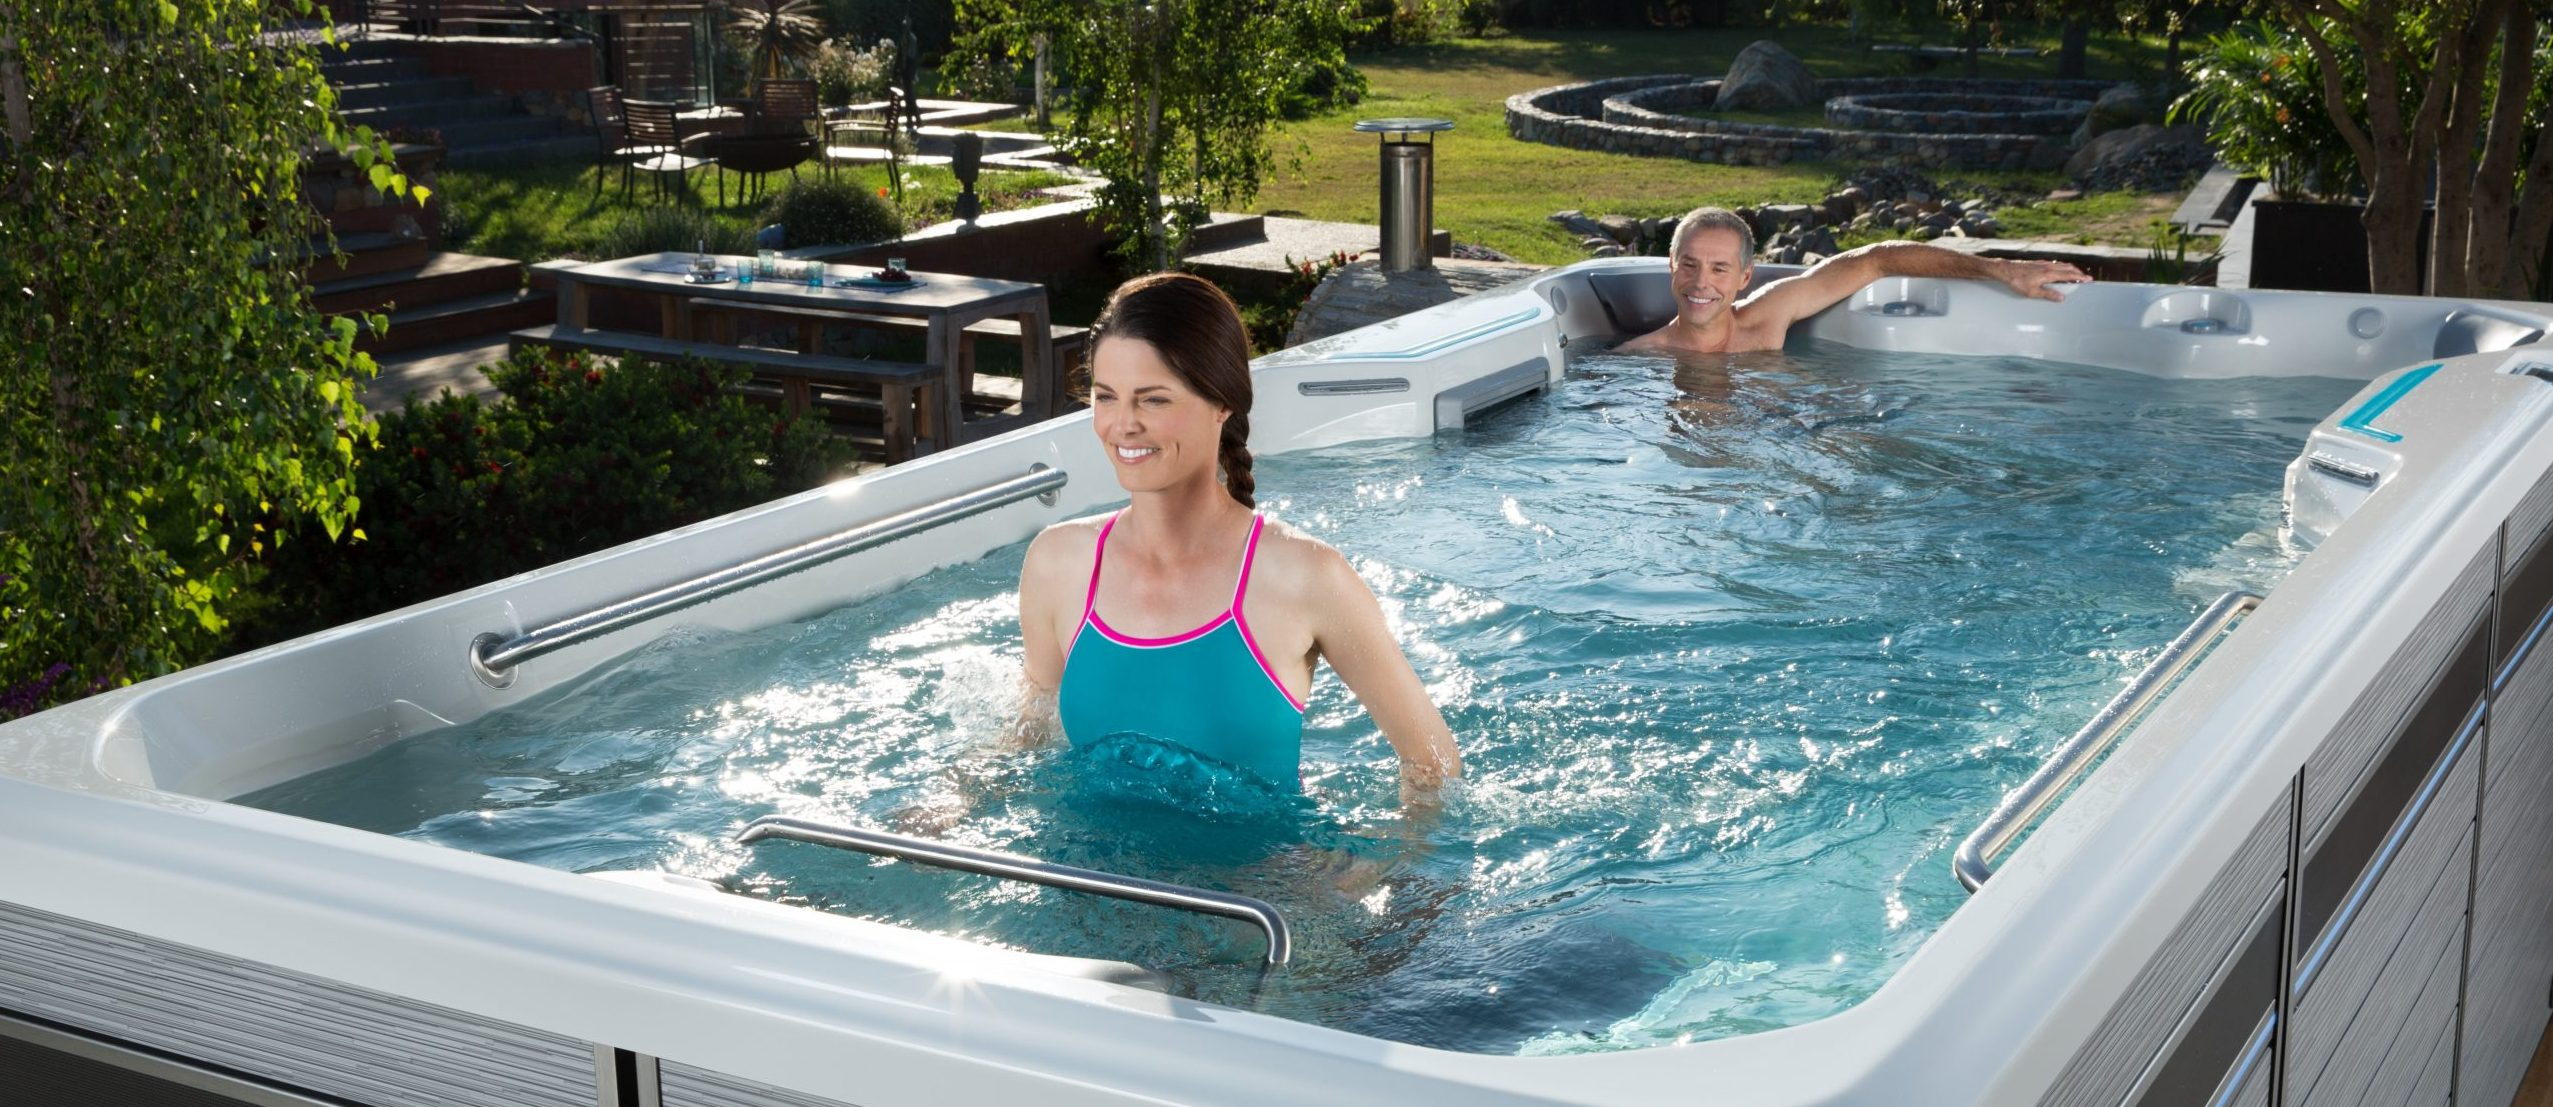 4 Reasons to Get a Swim Spa for Yourself